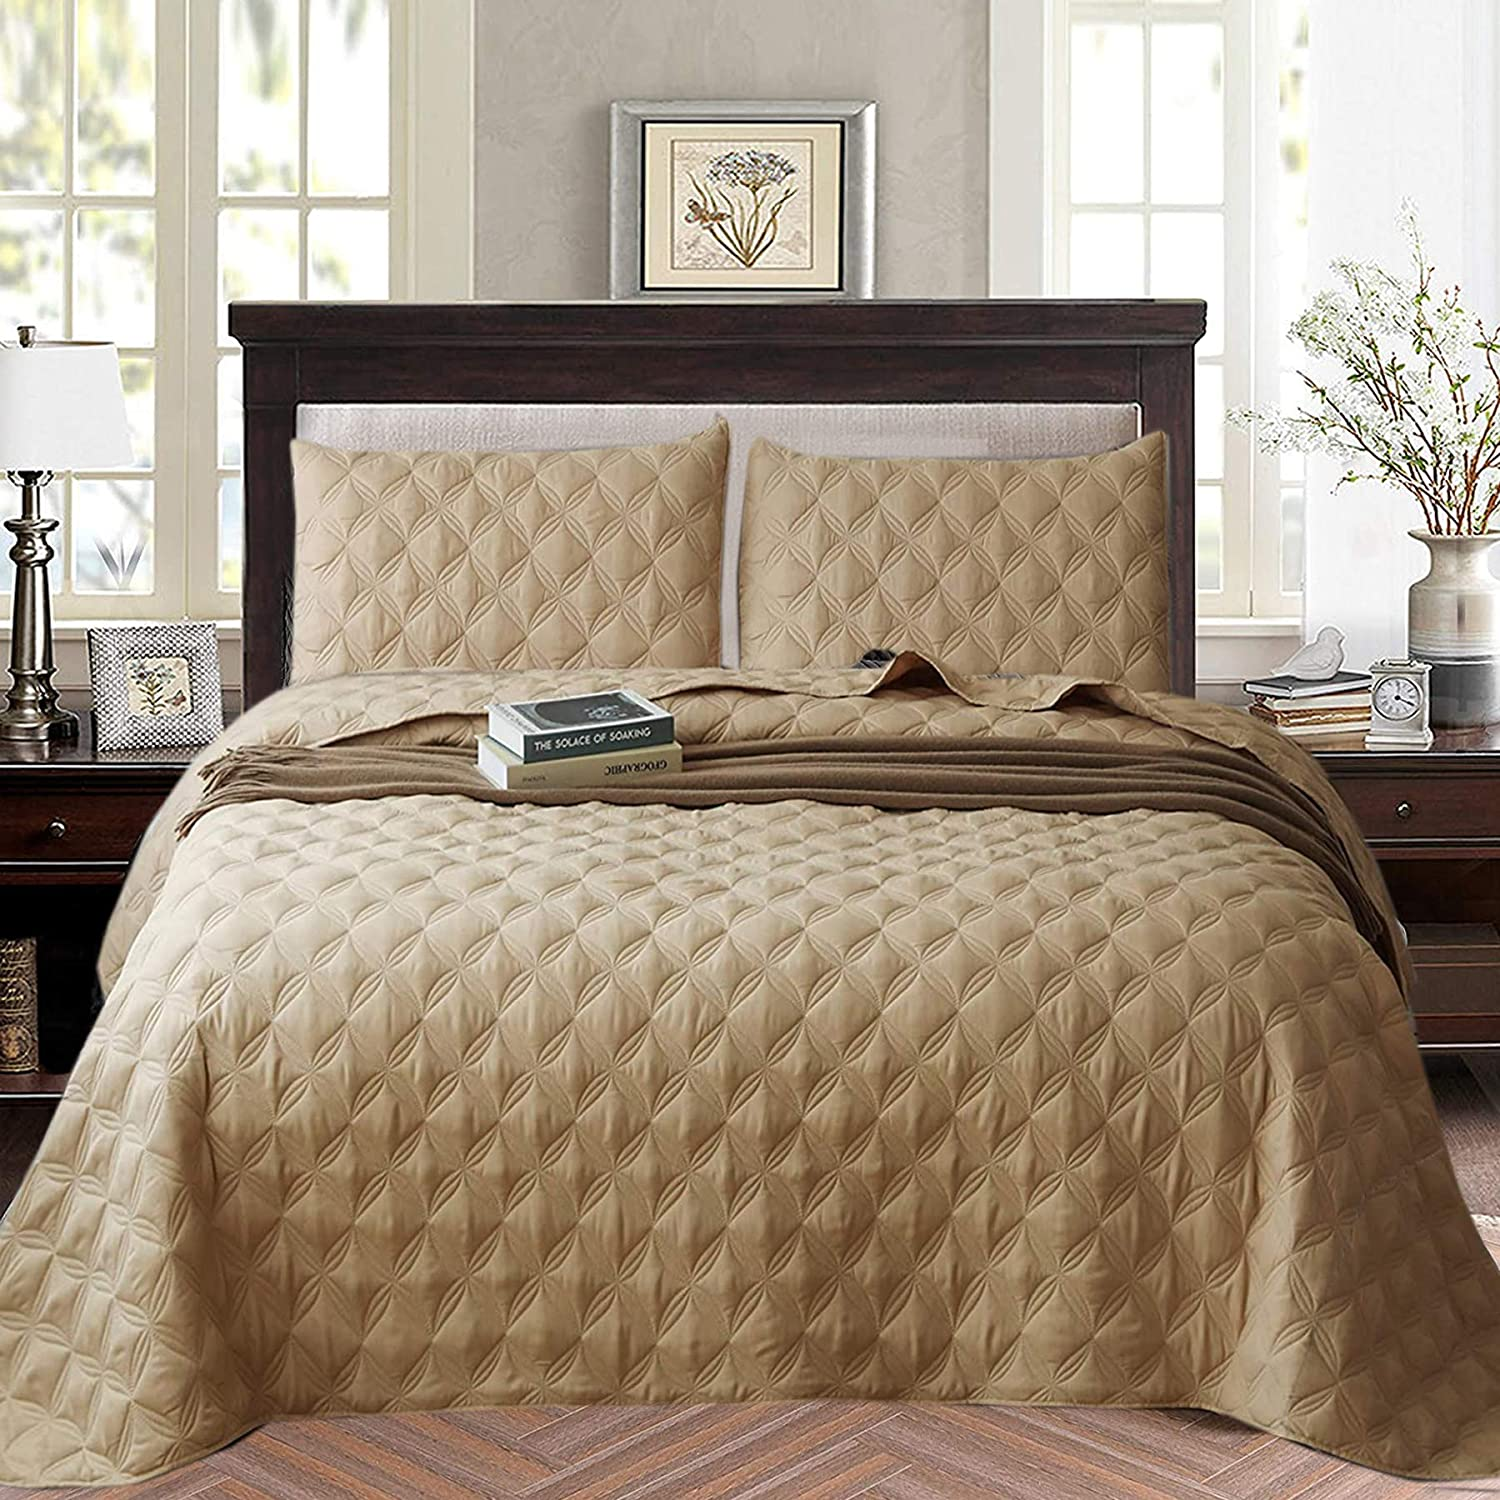 Exclusivo Mezcla 3-Piece Queen Size Quilt Set with Pillow Shams, as Bedspread/Coverlet/Bed Cover